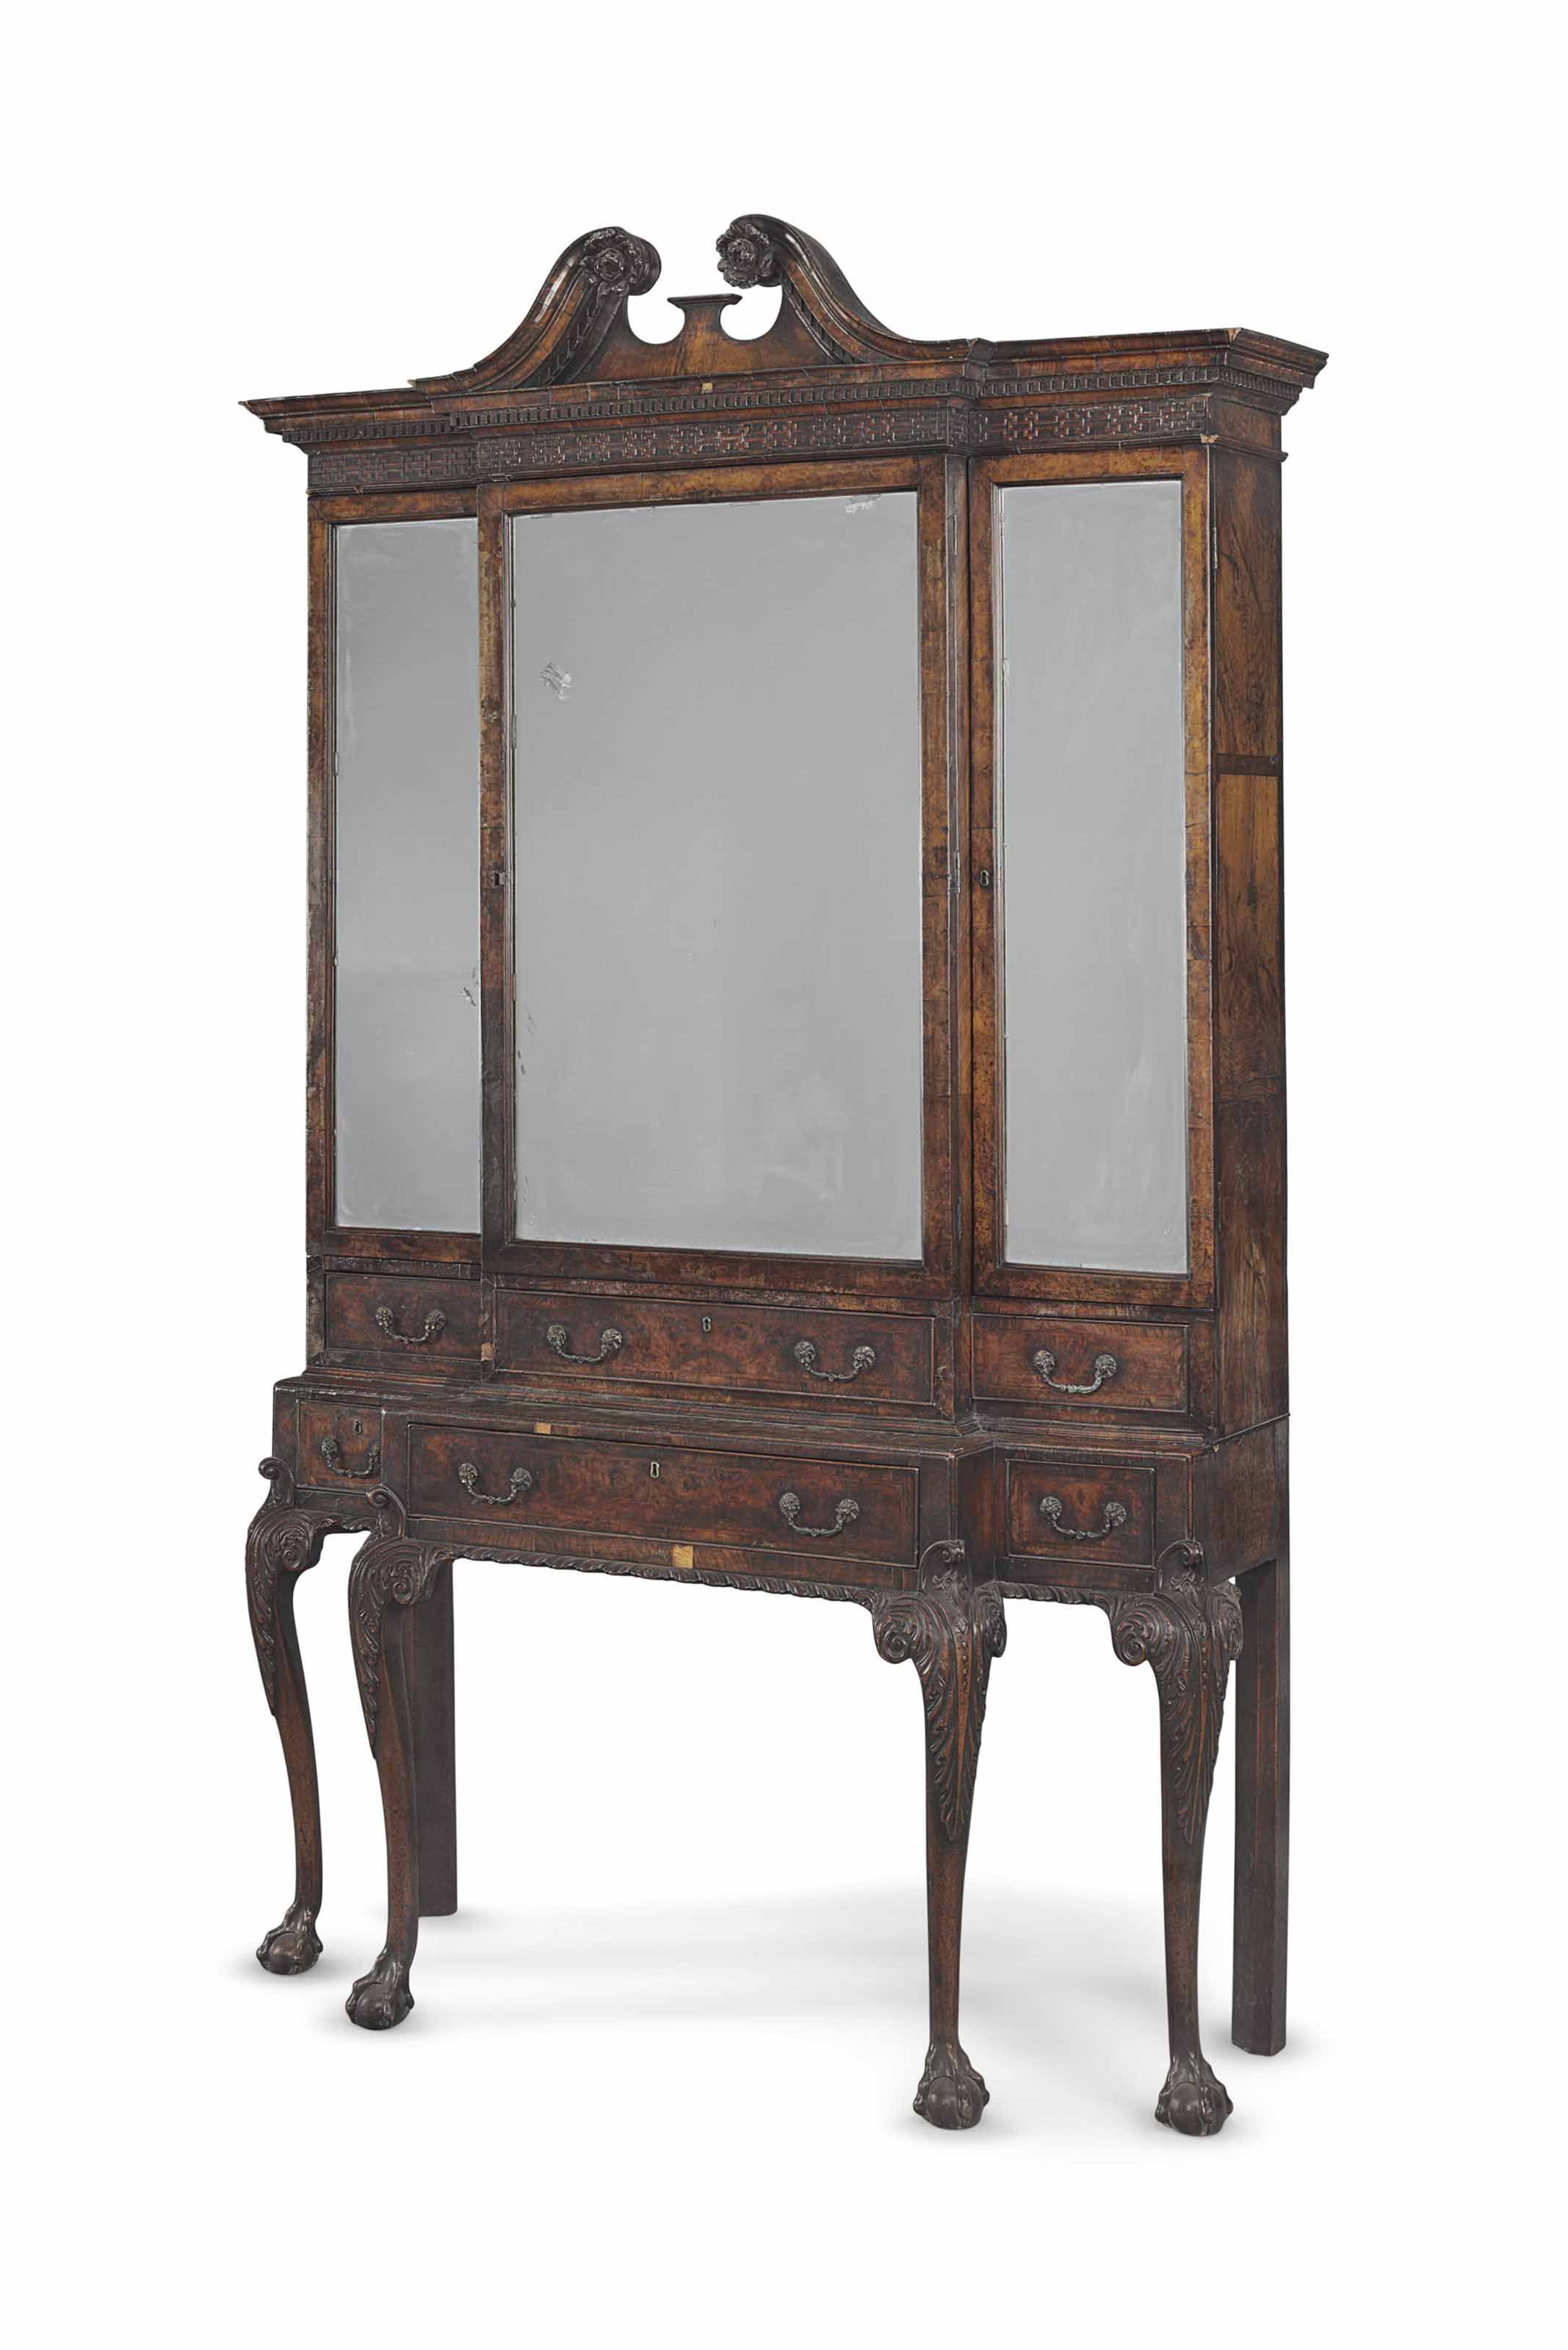 date unspecified A GEORGE II WALNUT CABINET ON STAND IN THE MANNER